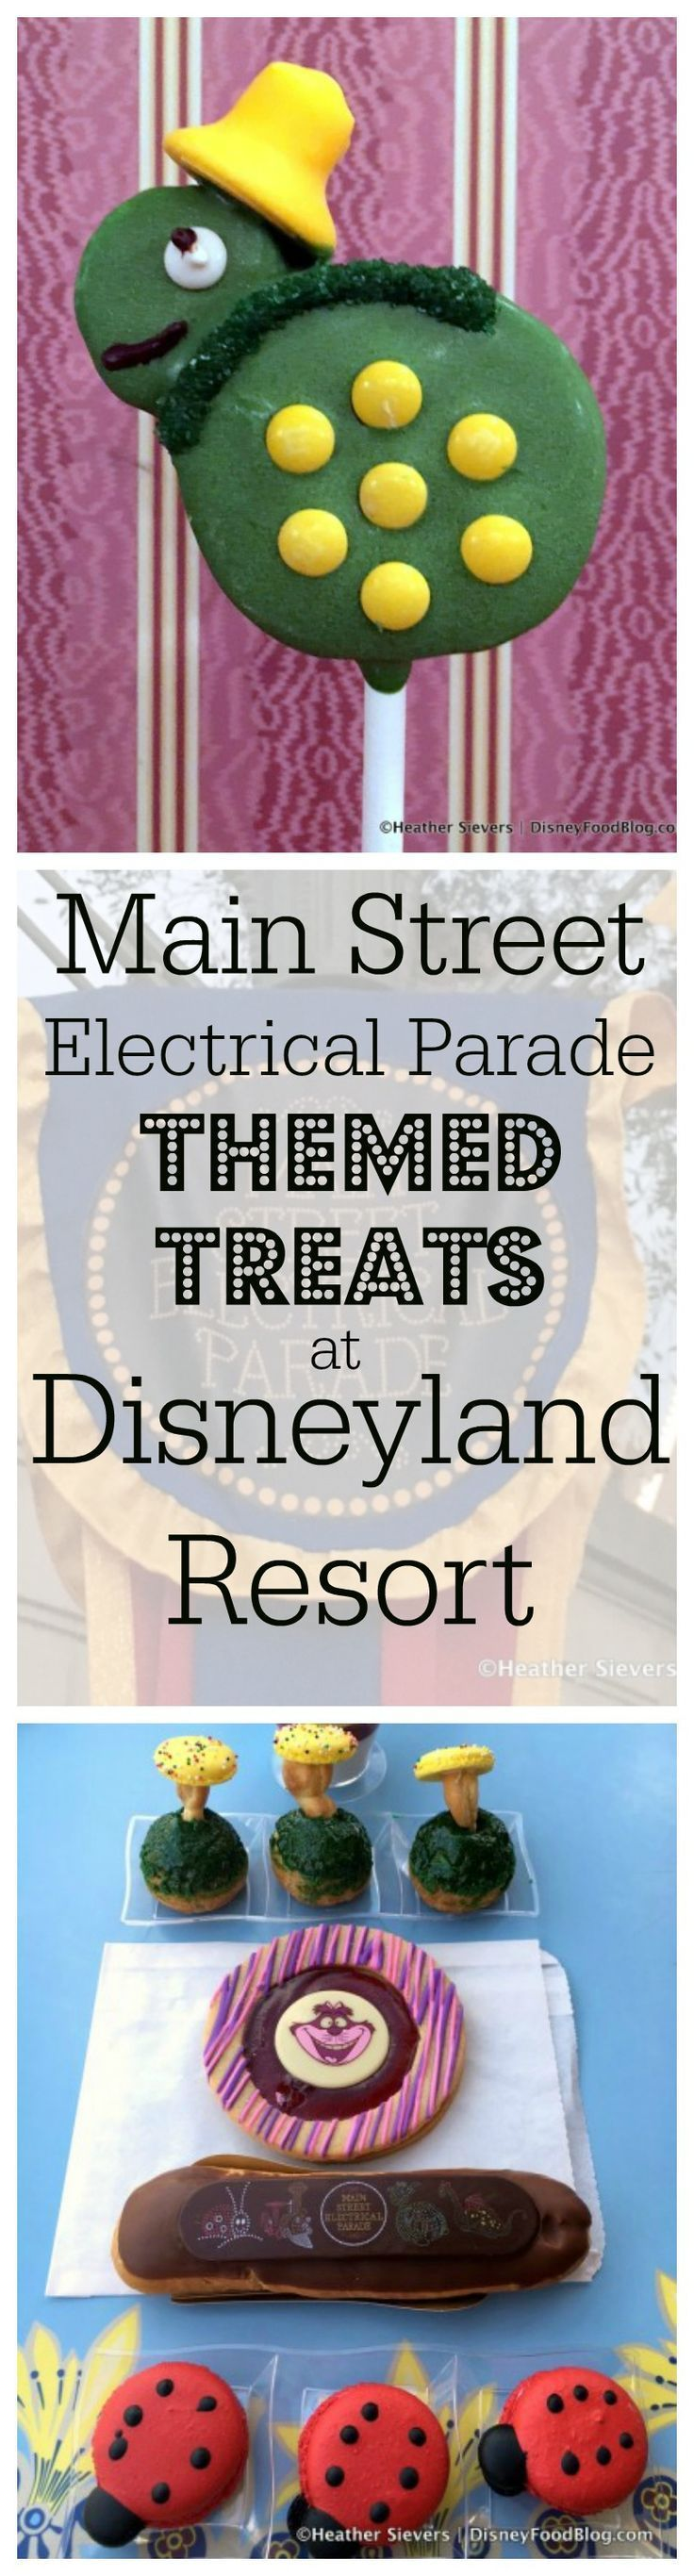 We review the Main Street Electrical Parade-Themed Treats at Disneyland Resort!